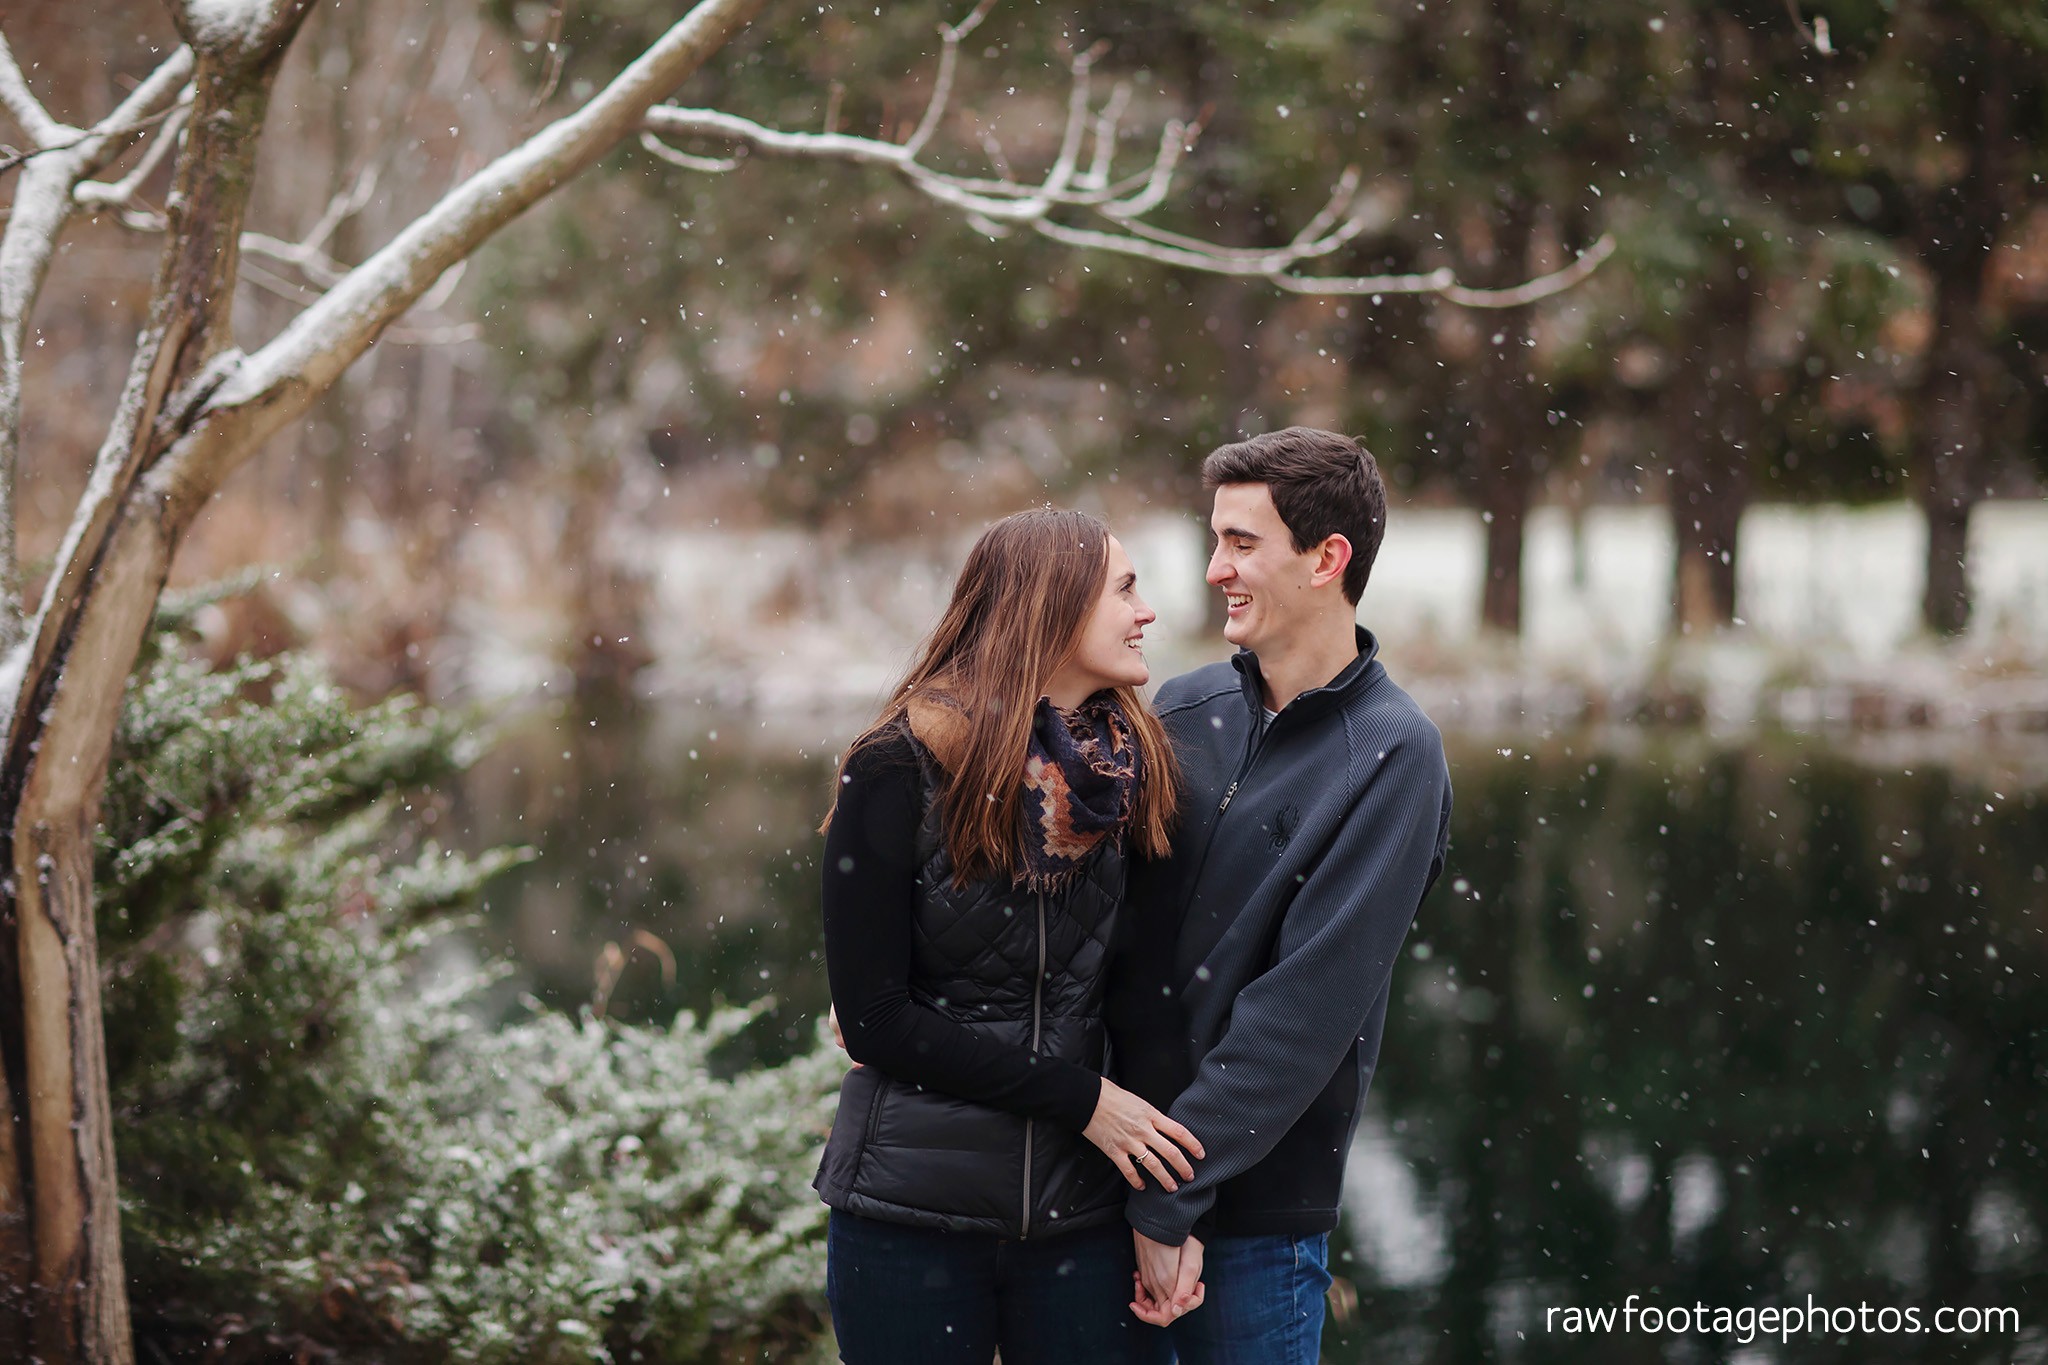 london_ontario_wedding_photographer-snowy_engagement_session-winter-barn-farm-snowflakes-blizzard-raw_footage_photography009.jpg